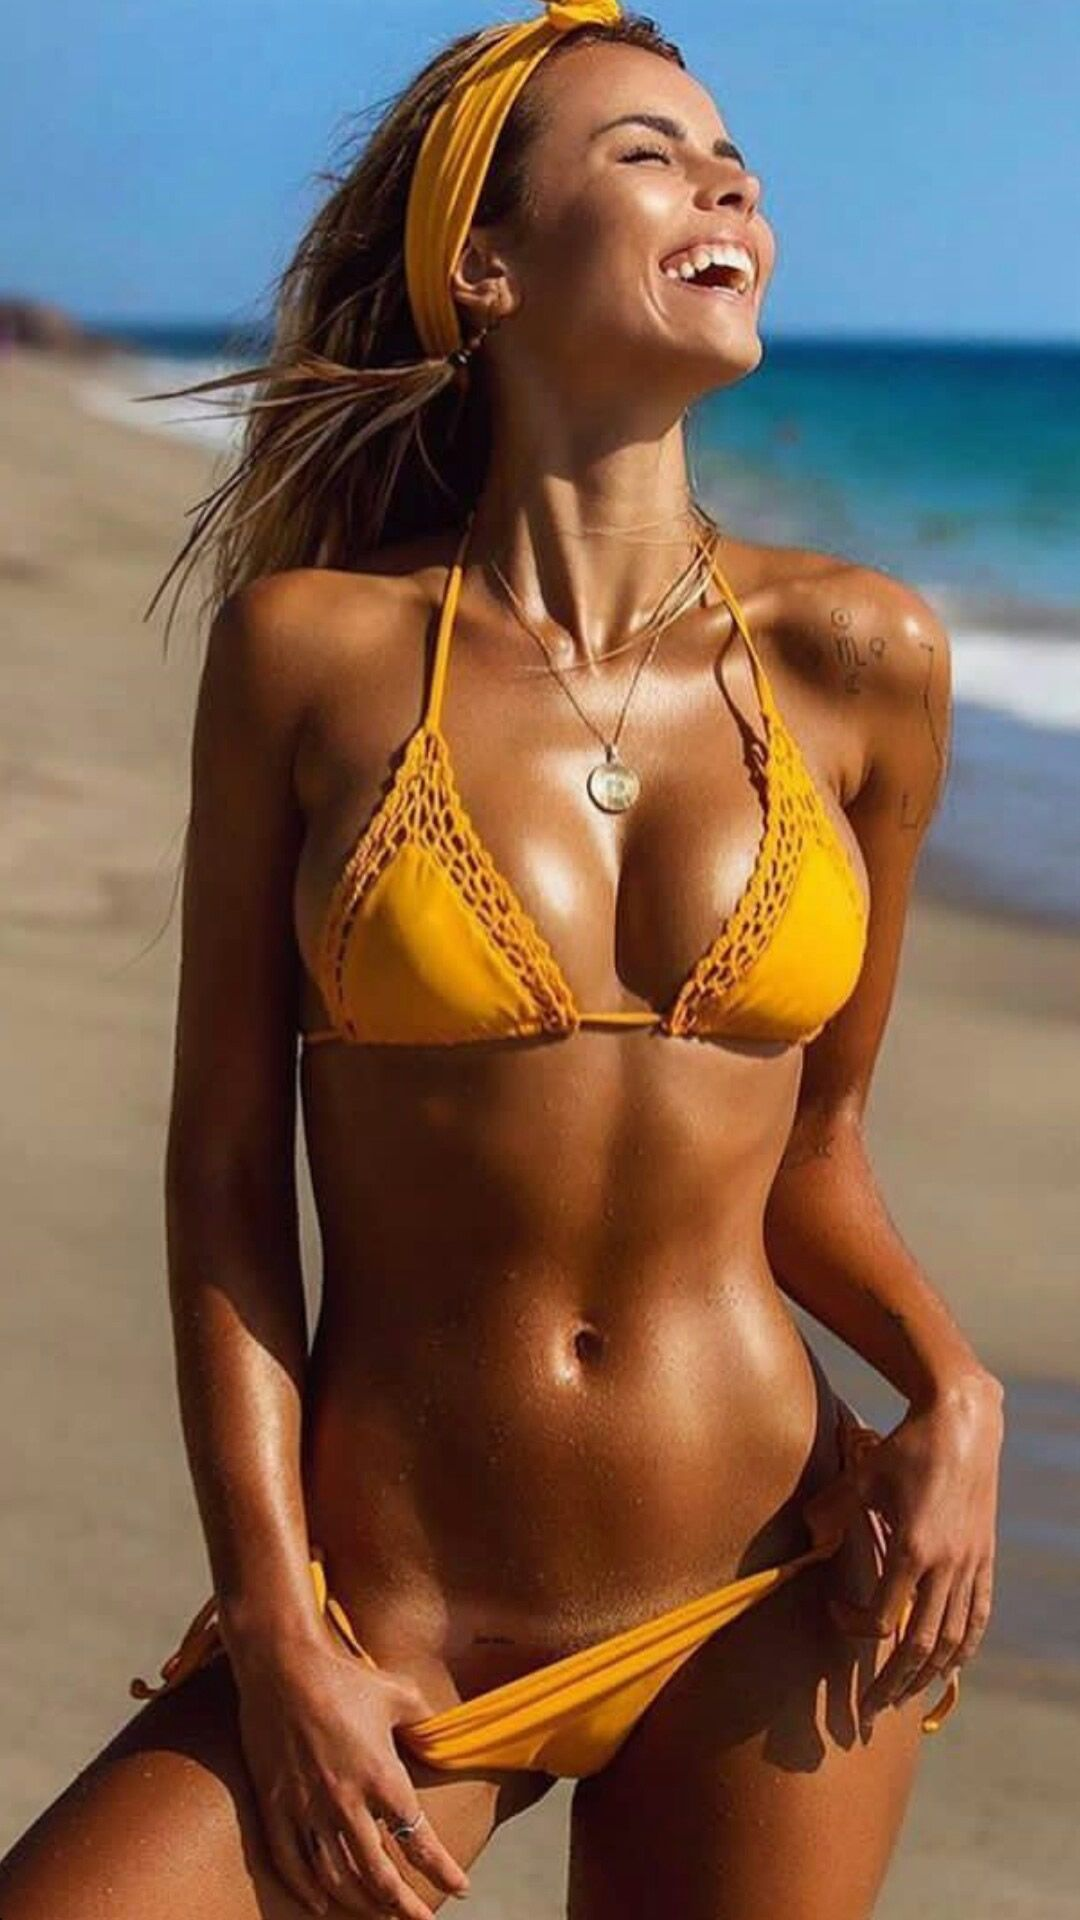 ba85e30d8eaa4 Charming Bikini Girls. Daily Pics. Sunny Beaches   Stylish  swimwear. Are  You Ready for the Summer